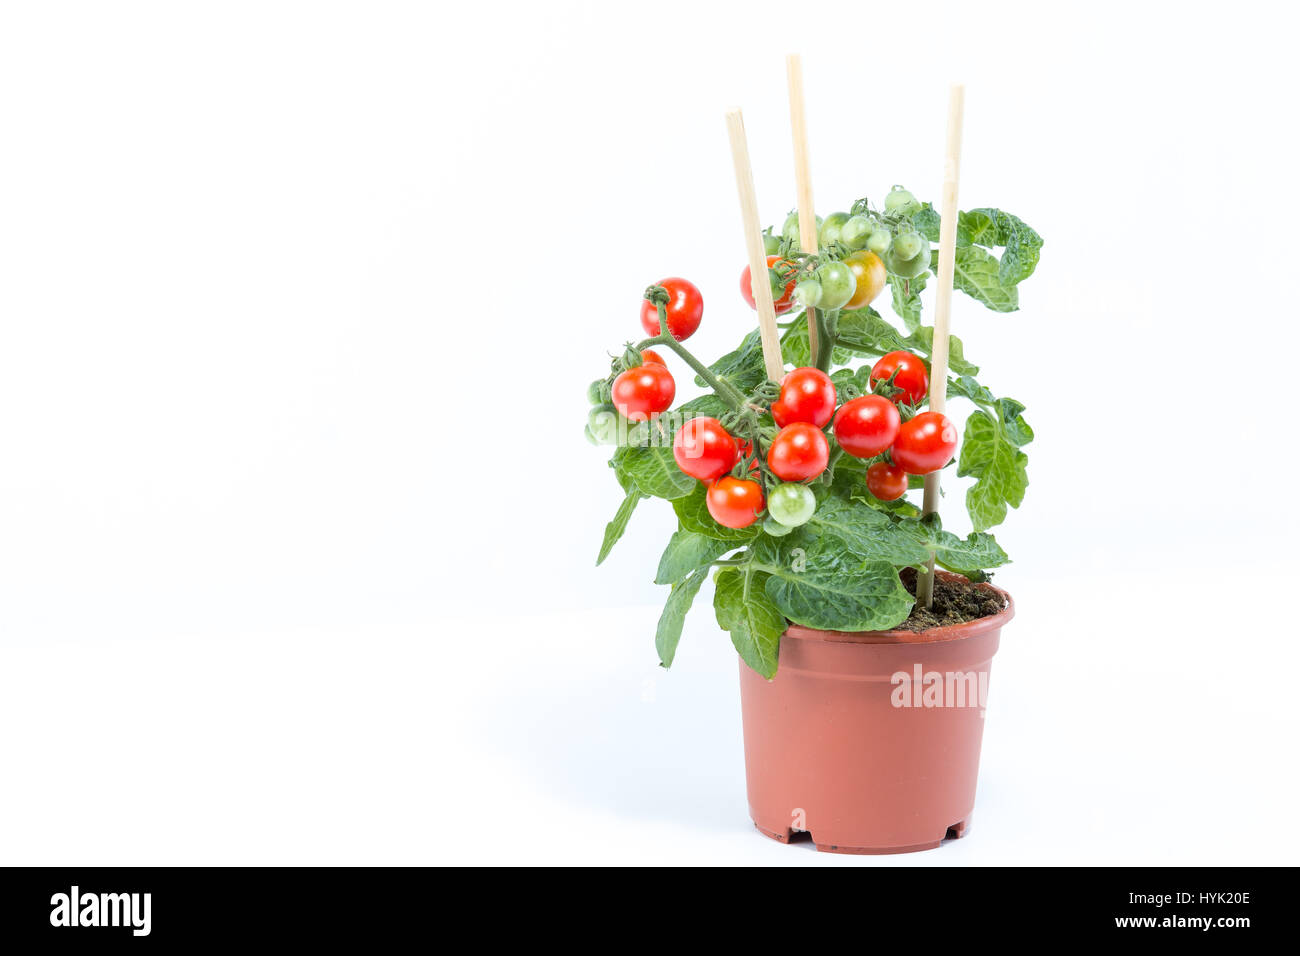 Single home cultivated organic cherry tomatoes tree with mini red fresh tomatoes hanging on it, planted in a brown - Stock Image